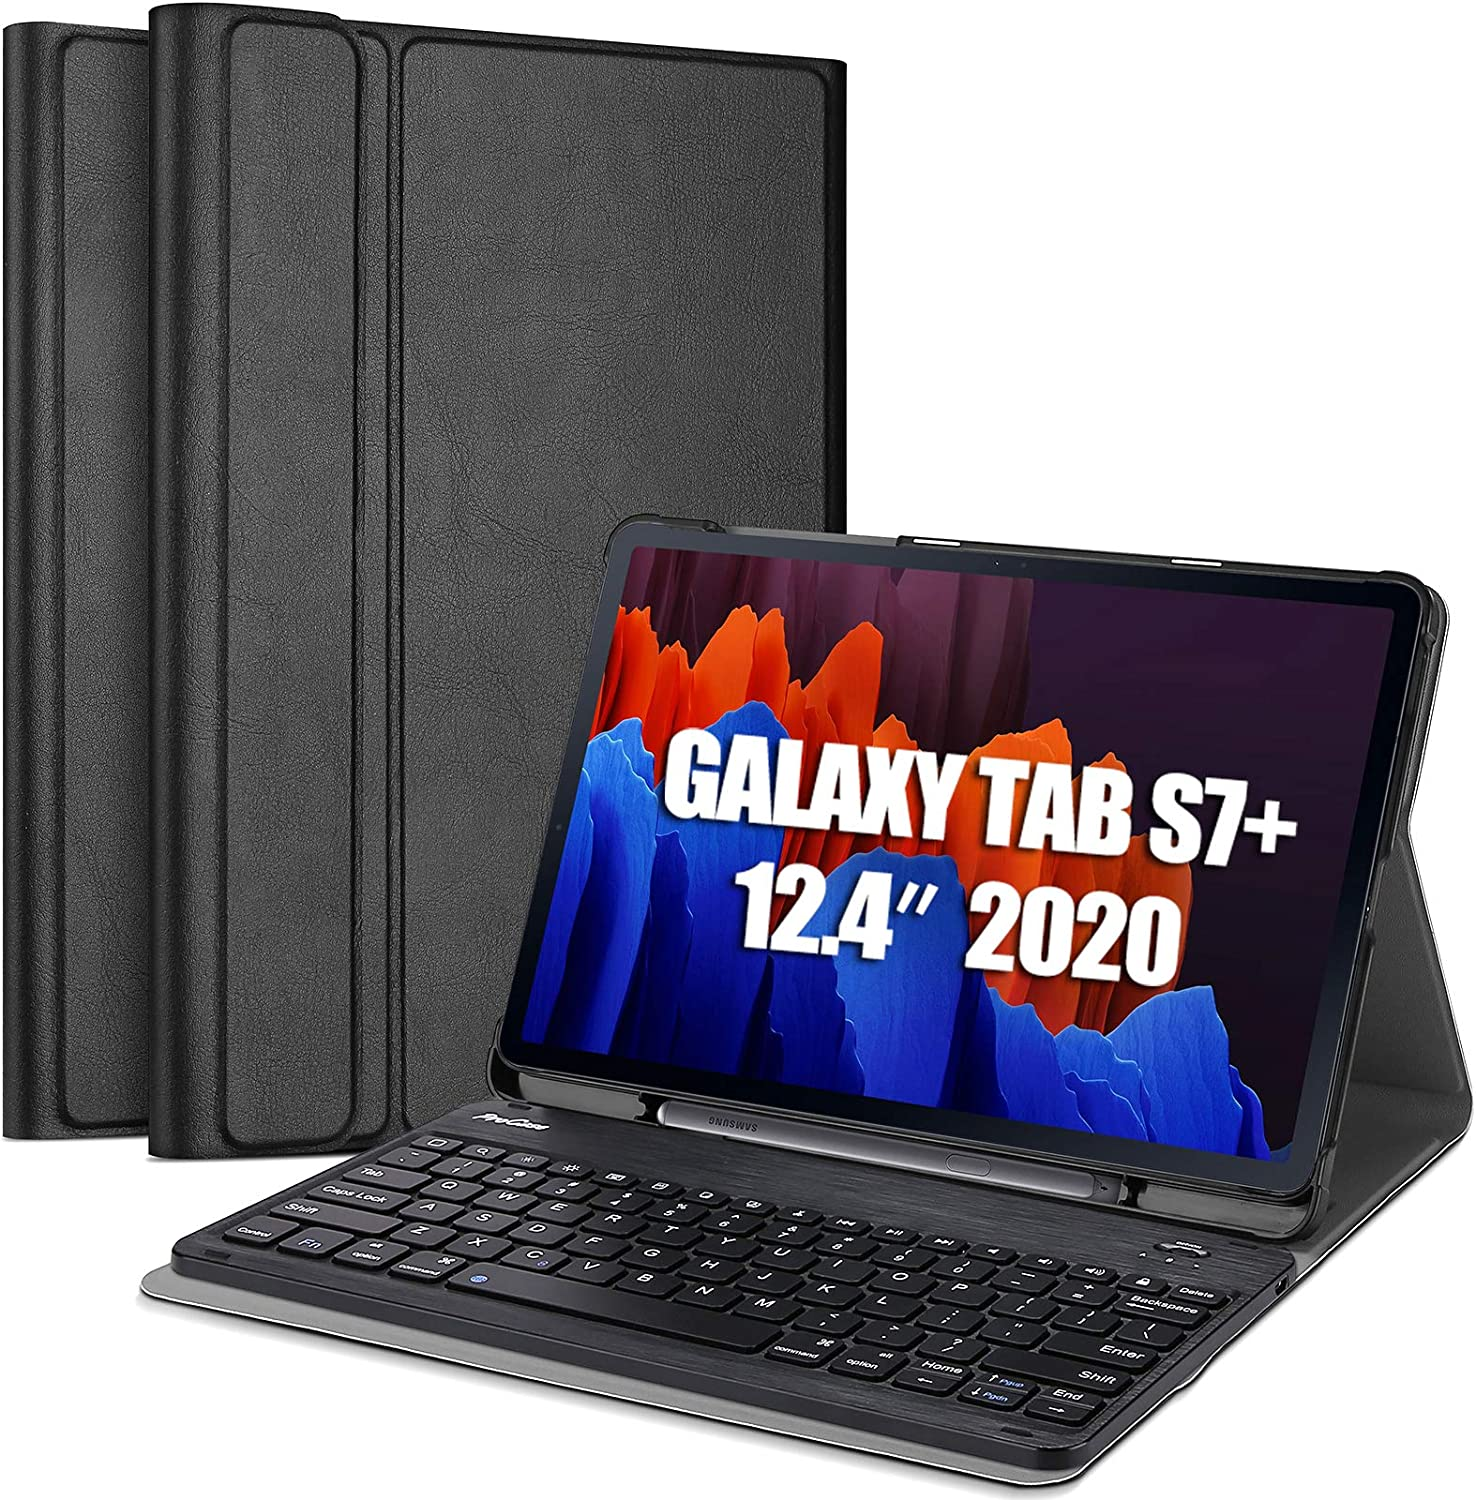 ProCase Galaxy Tab S7 Plus Keyboard Case 12.4 inch 2020 (Model SM-T970/T975/T976) with S Pen Holder, Lightweight Smart Cover with Magnetically Detachable Wireless Keyboard for Galaxy Tab S7+ -Black